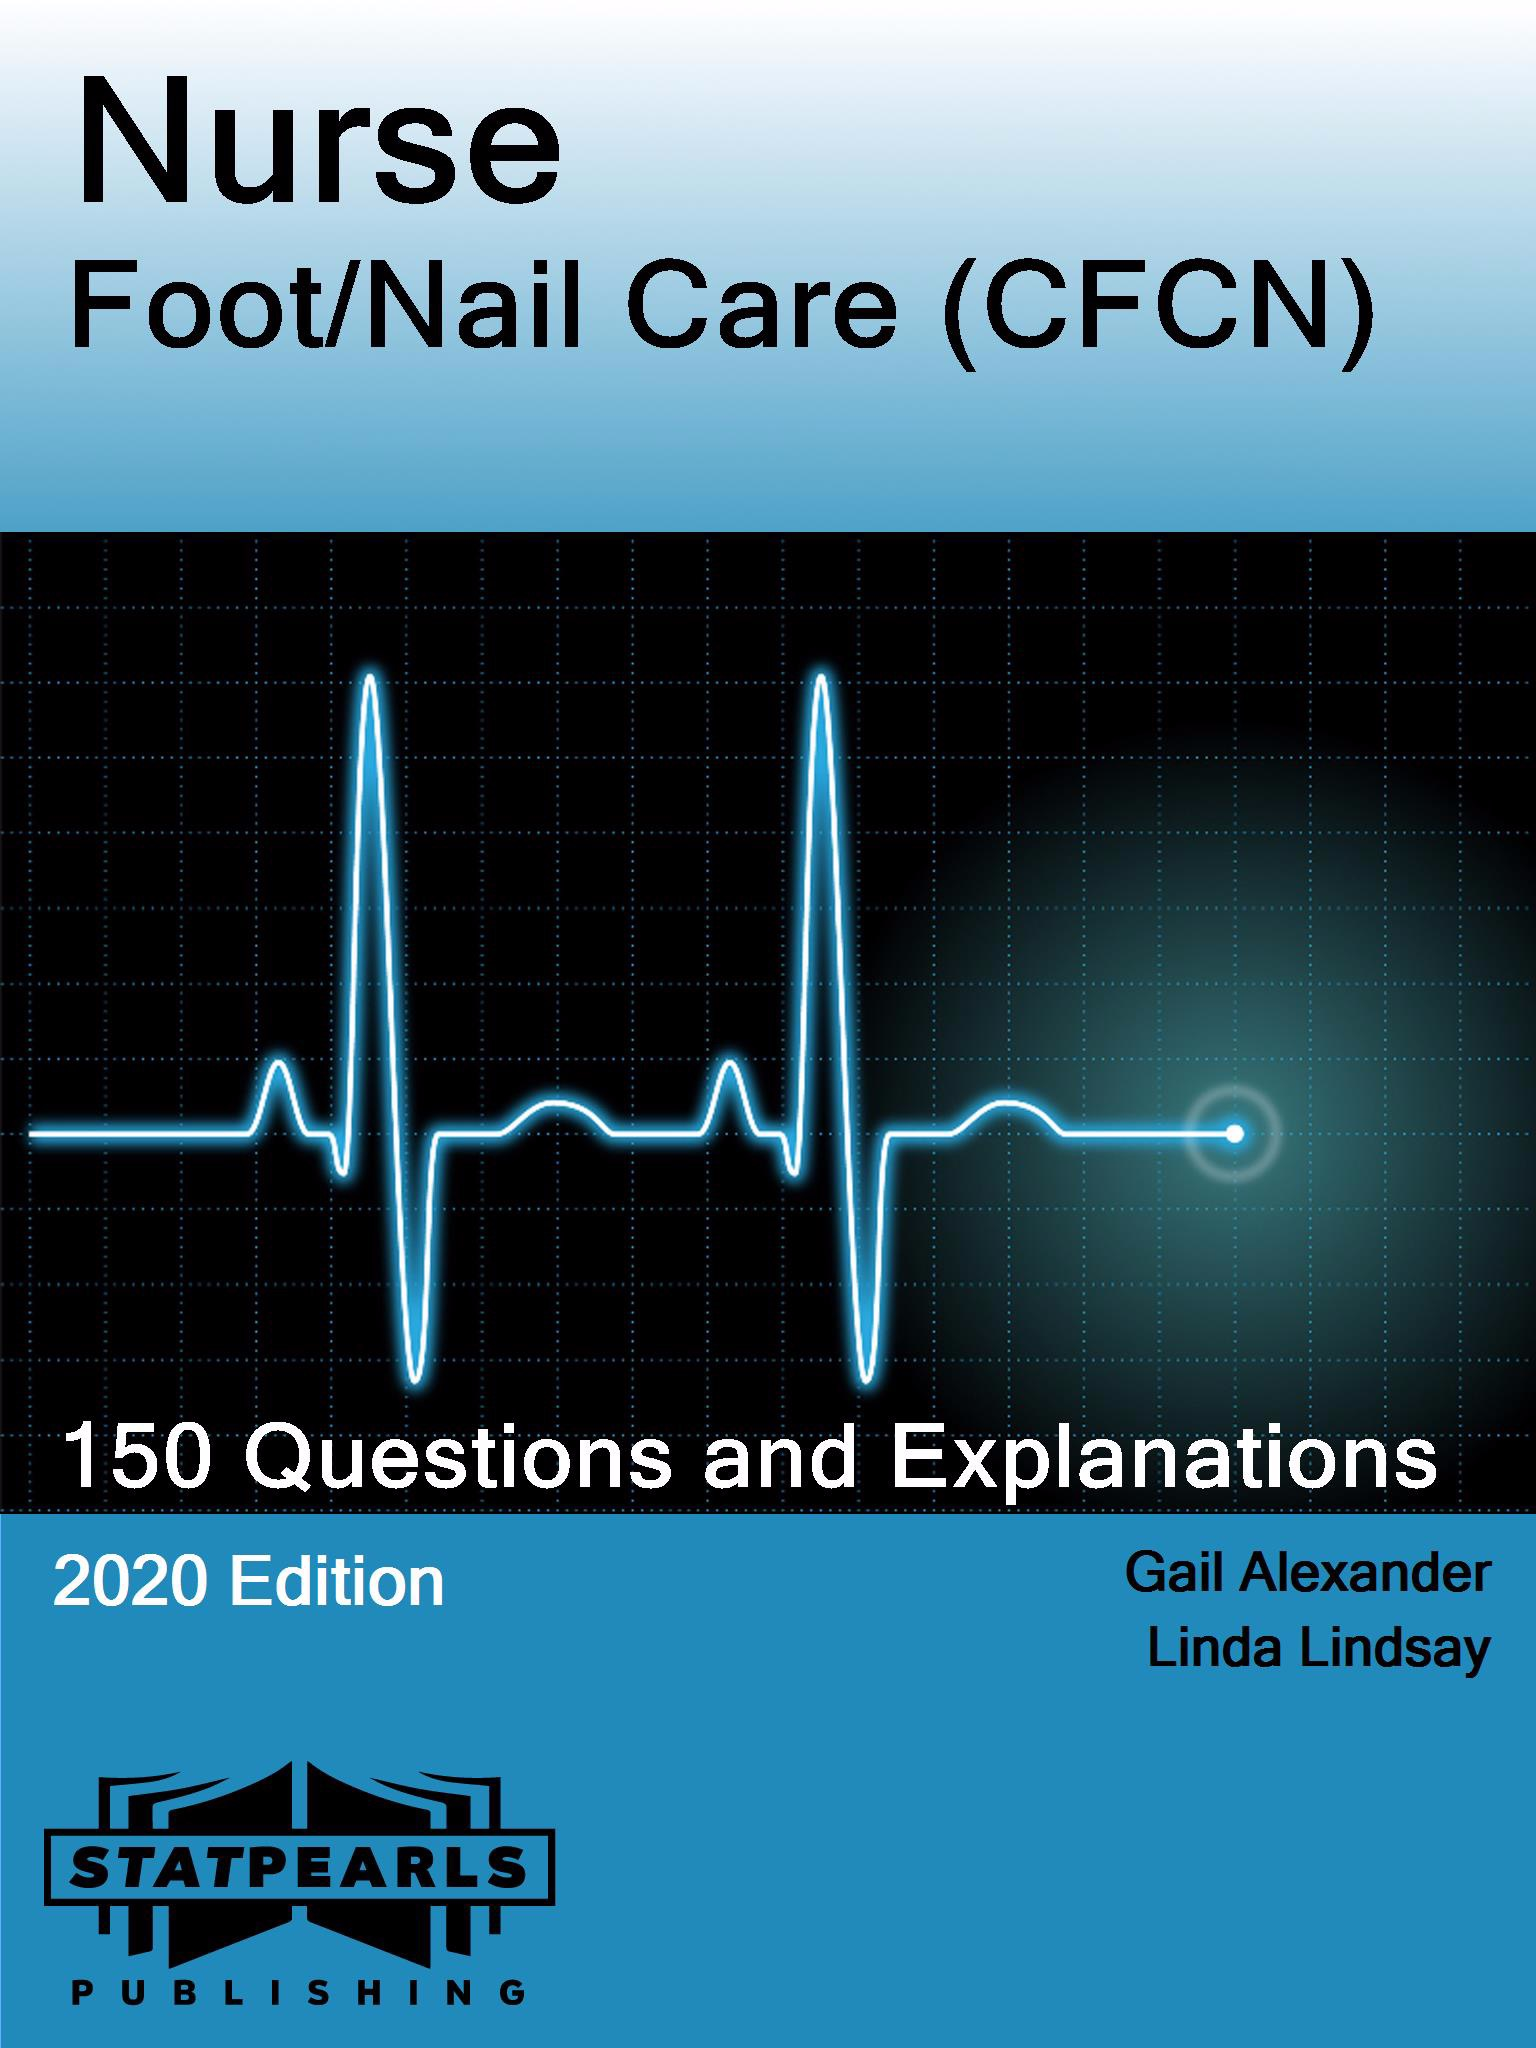 Nurse Foot/Nail Care (CFCN)